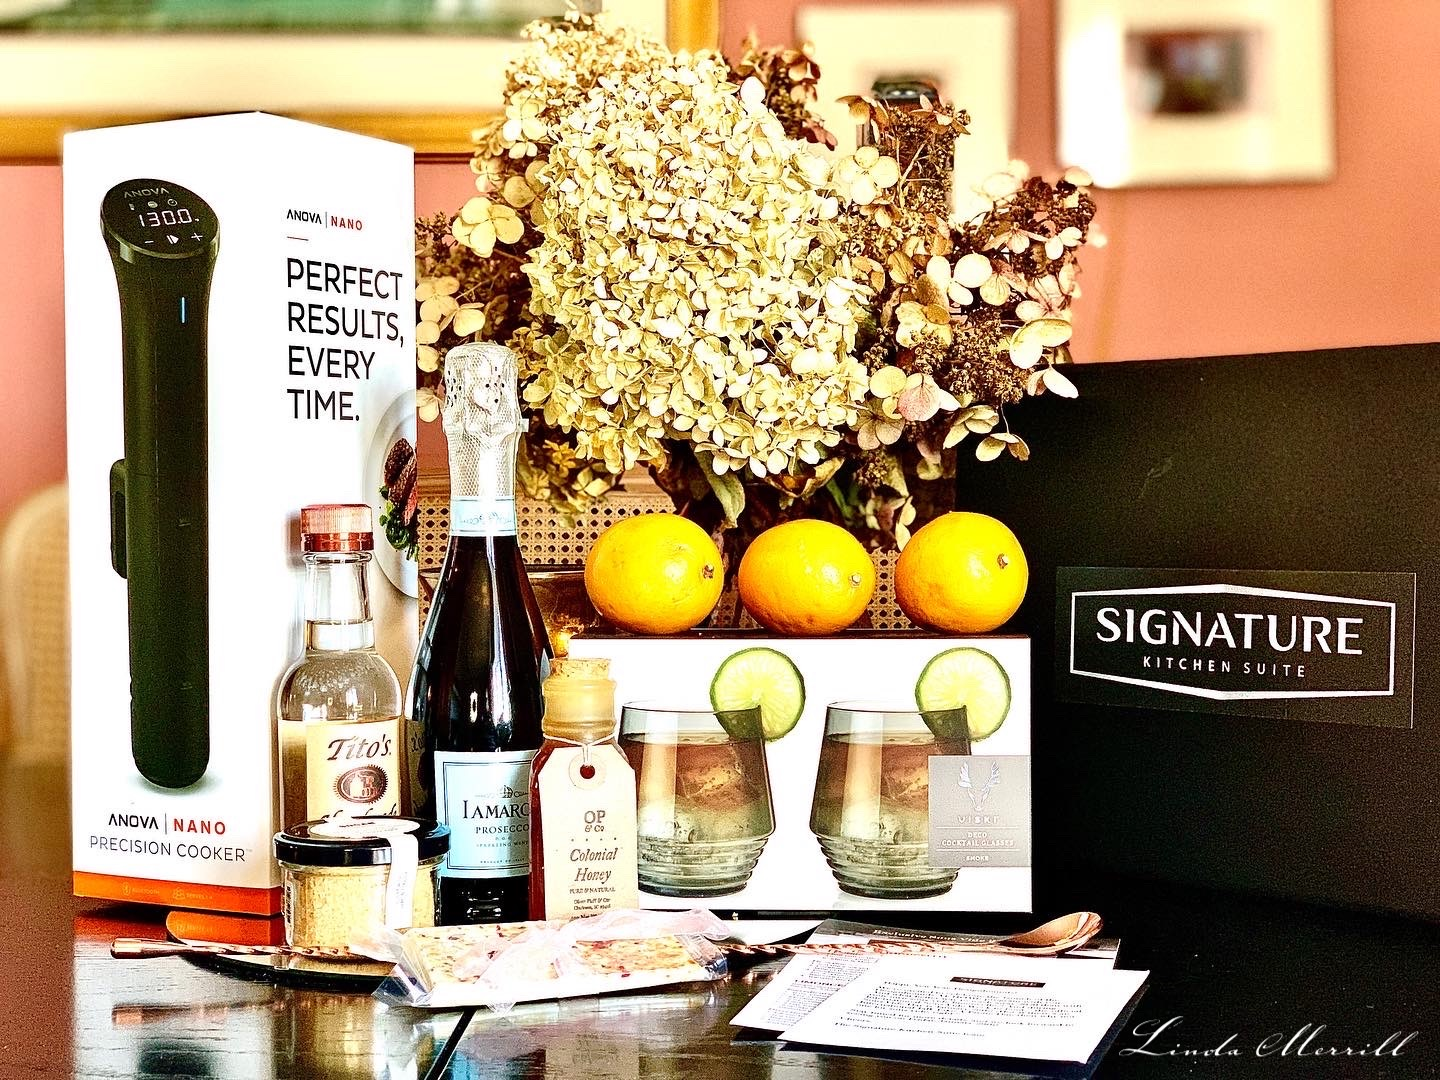 Signature Kitchen Suite Sous Vide cocktail kit linda merrill